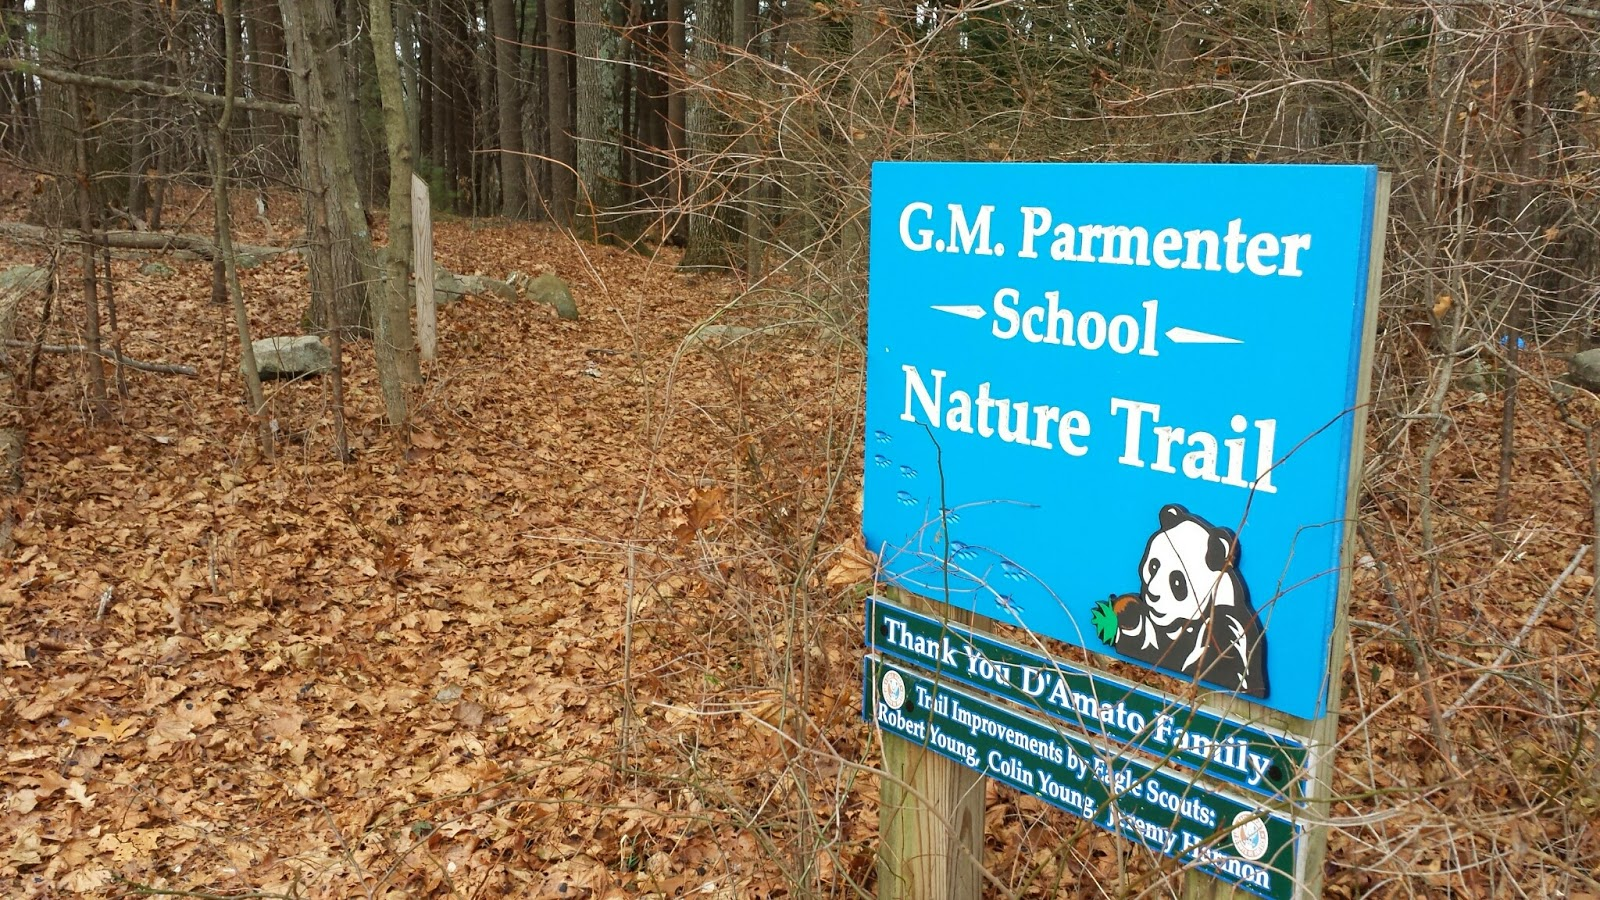 Parmenter Nature Trail entrance